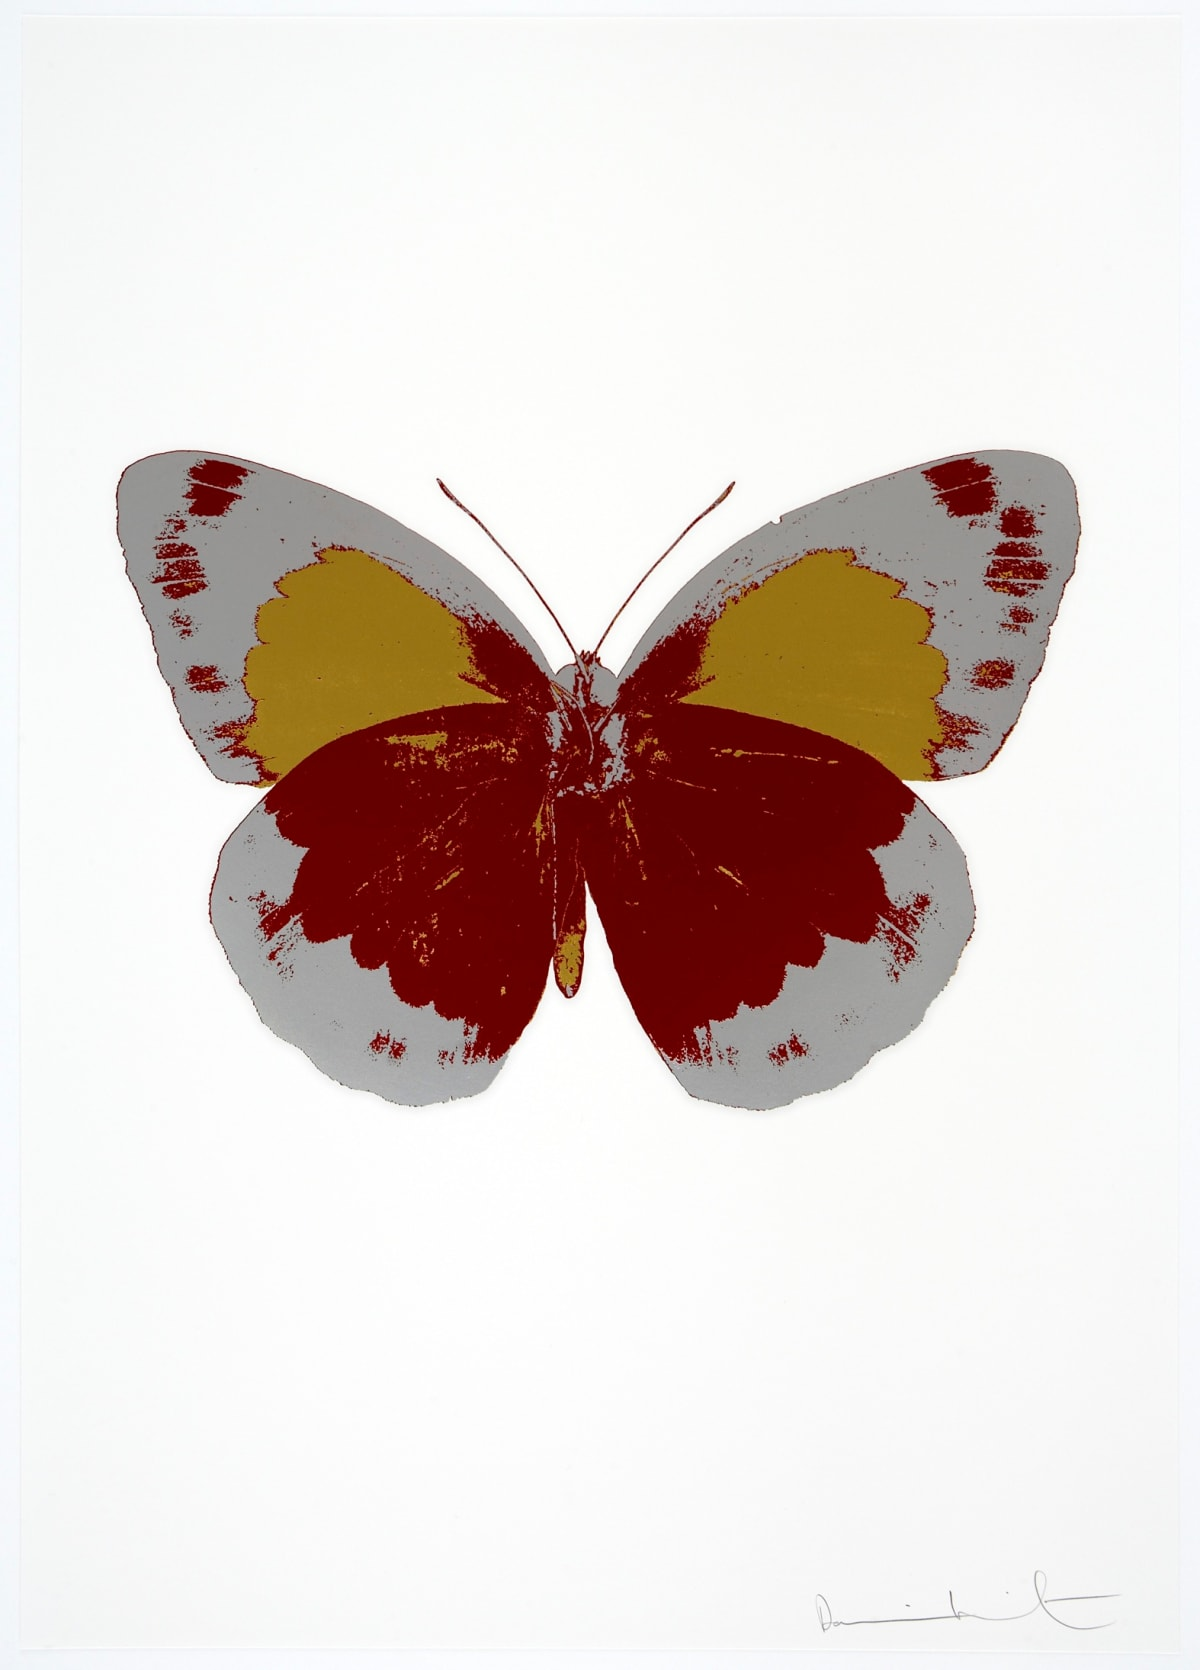 Damien Hirst The Souls II - Chilli Red/Silver Gloss/Oriental Gold, 2010 3 colour foil block on 300gsm Arches 88 archival paper. Signed and numbered. Published by Paul Stolper and Other Criteria 72 x 51cm OC7861 / 658-44 Edition of 15